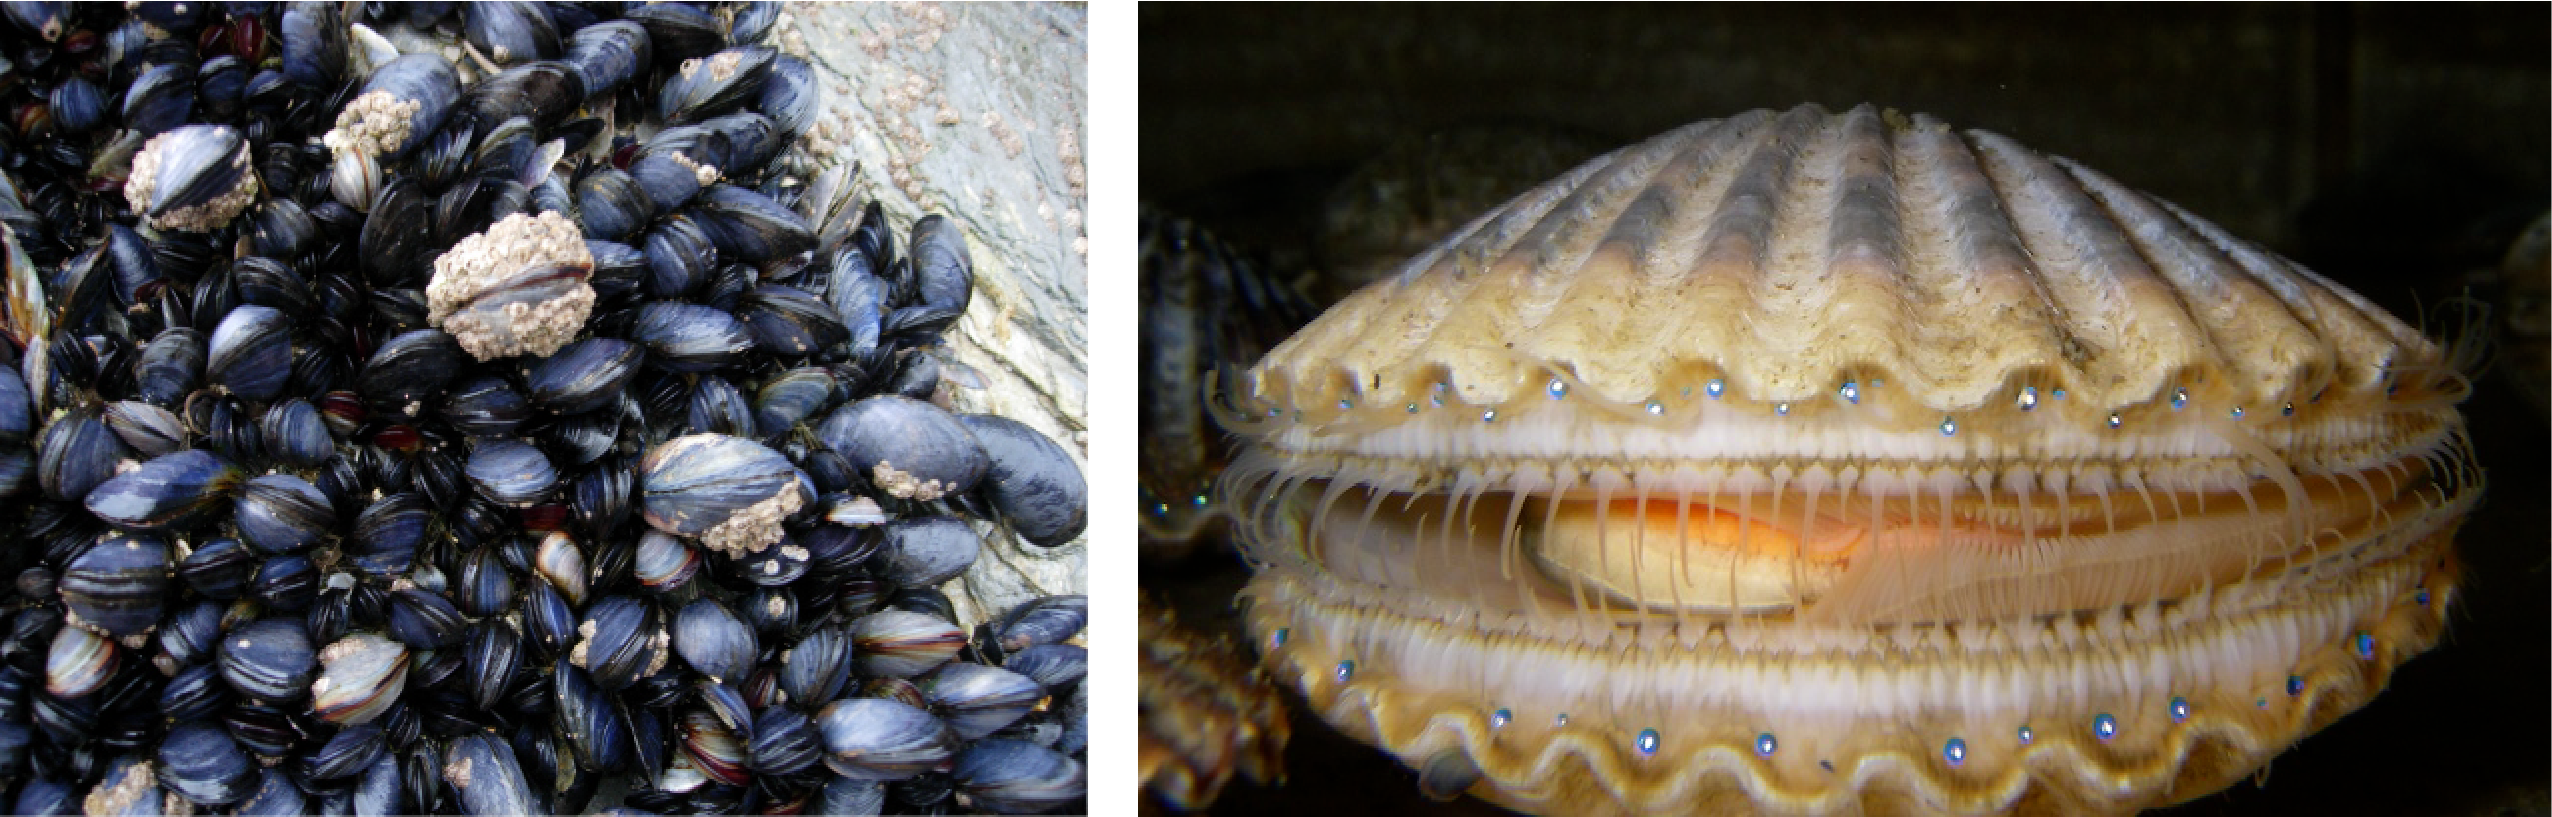 The photo shows black and gray mussels clustered together. Image b is a scallop, with its eyespots clearly noticable along the edge of its mantle.